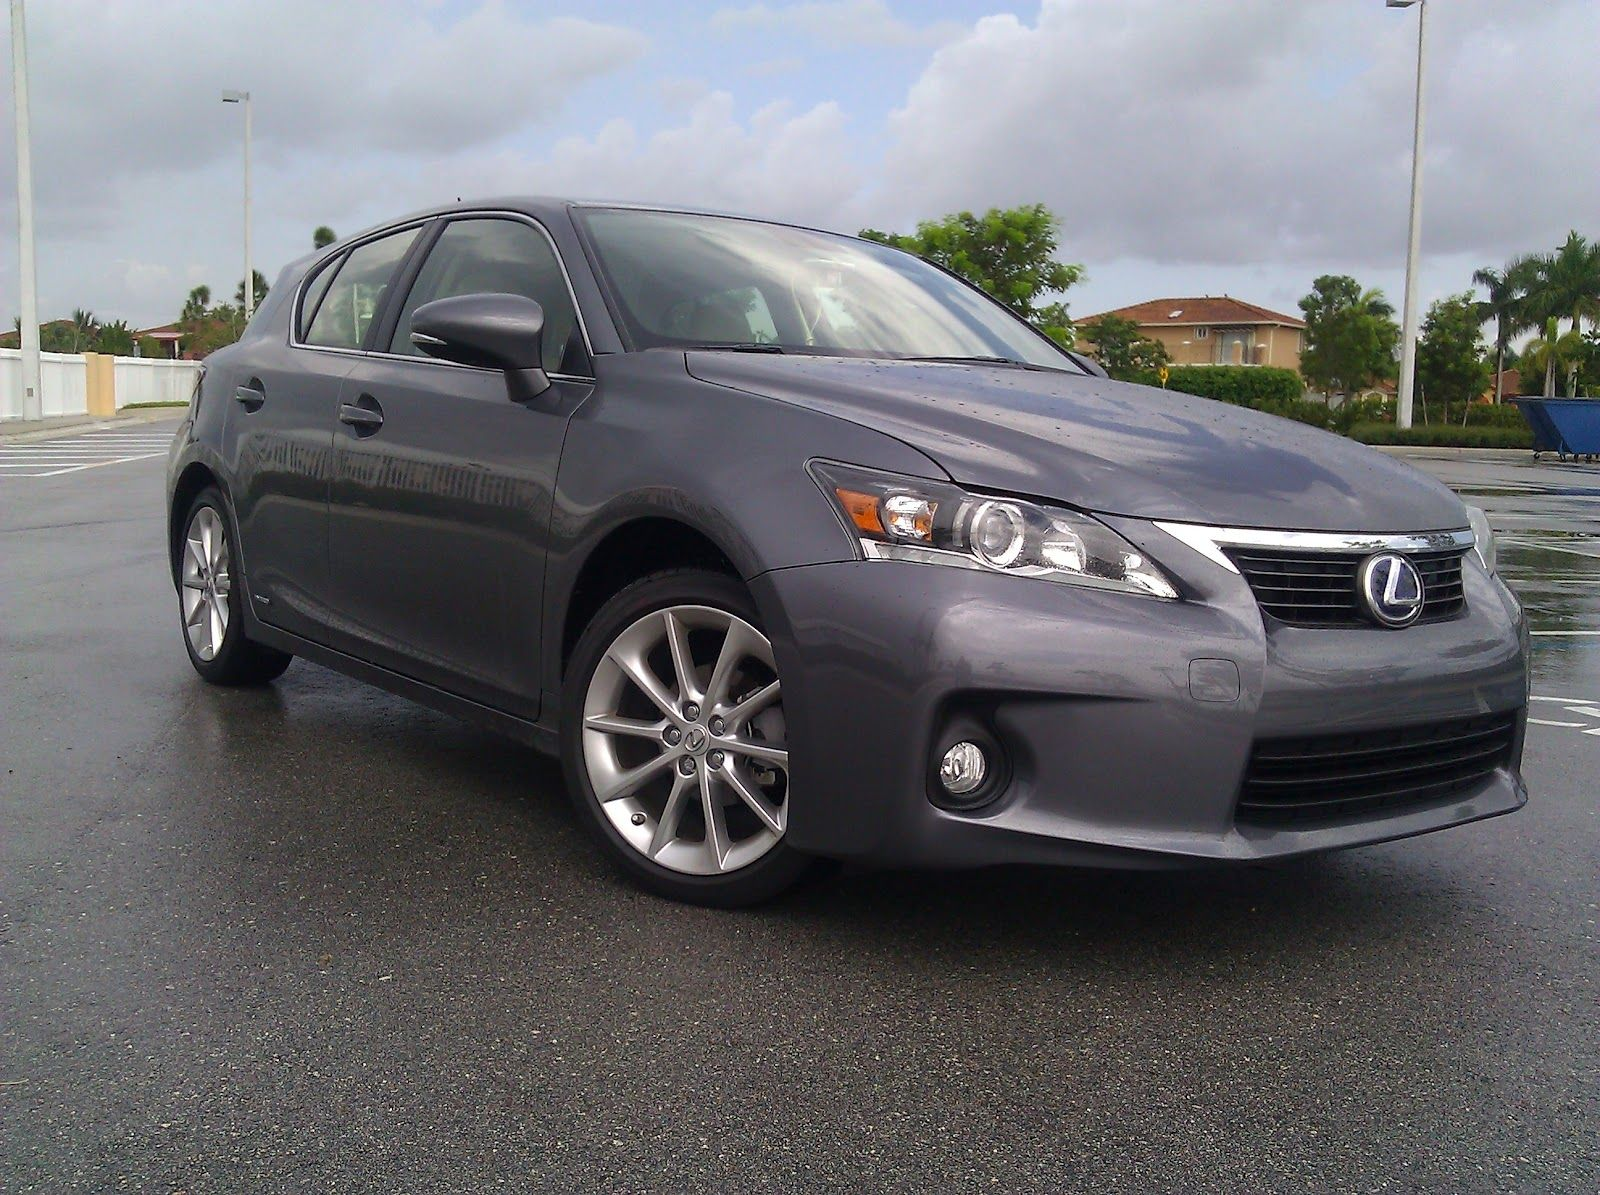 2012 Lexus CT200h Check out my review here http